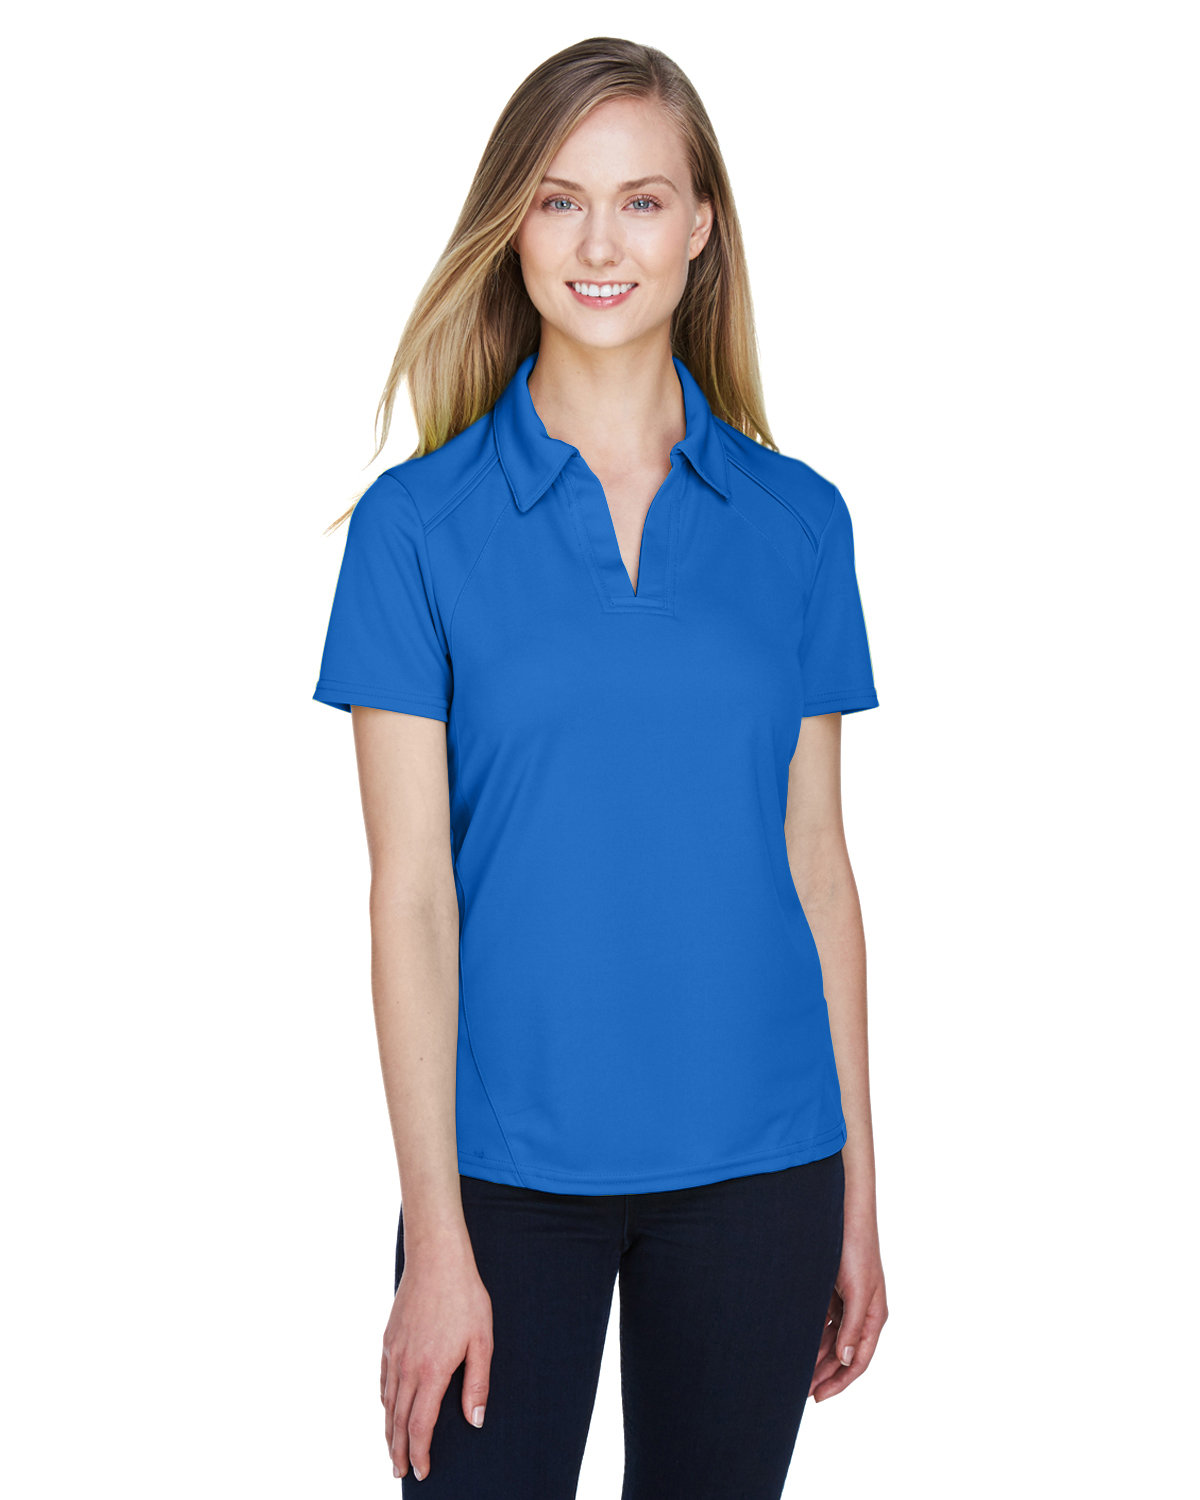 North End Ladies' Recycled Polyester Performance Piqué Polo LT NAUTICAL BLU